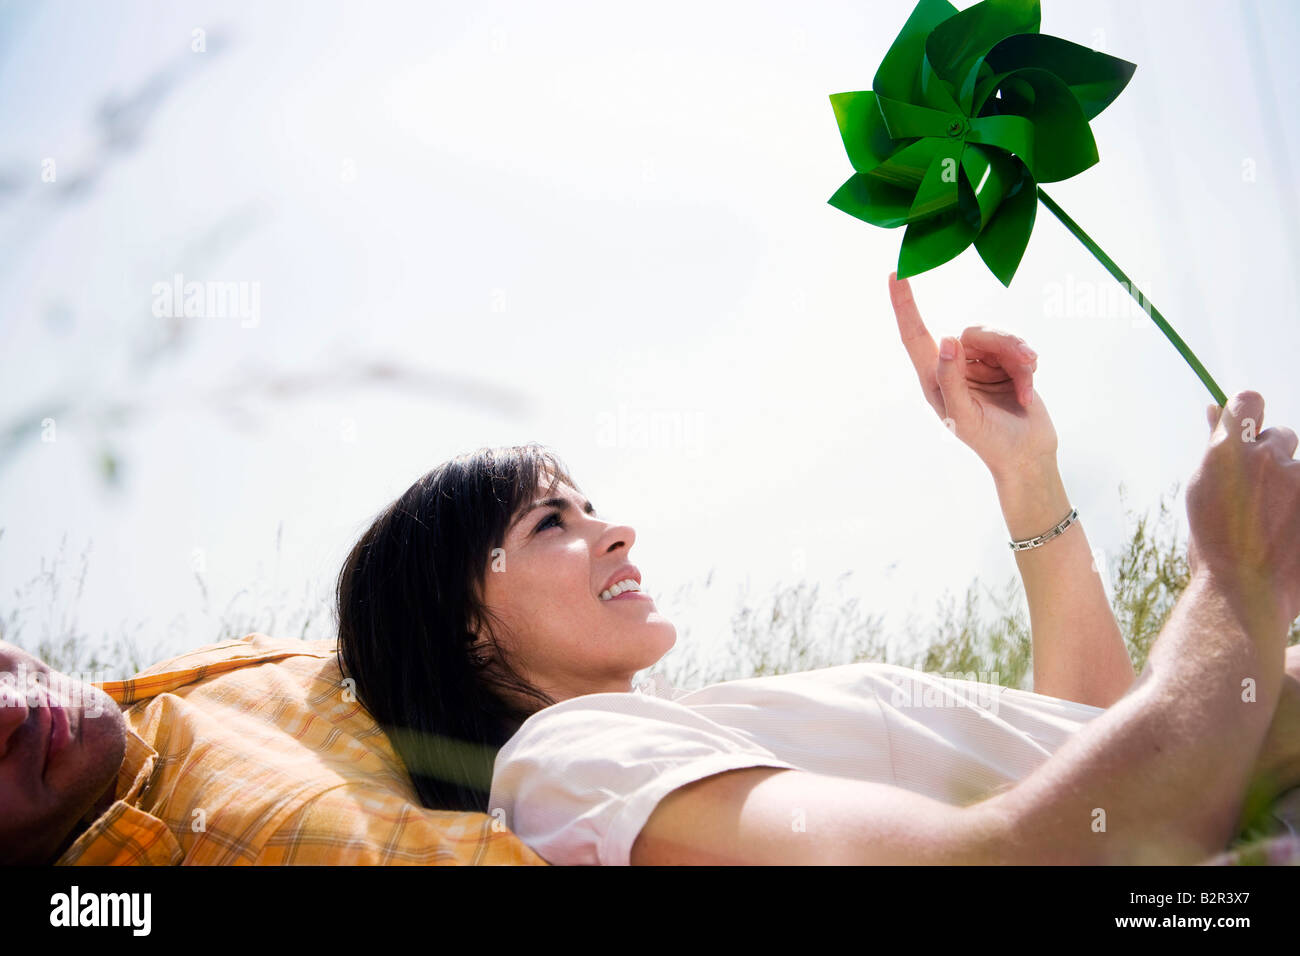 Woman in grass with windmill - Stock Image